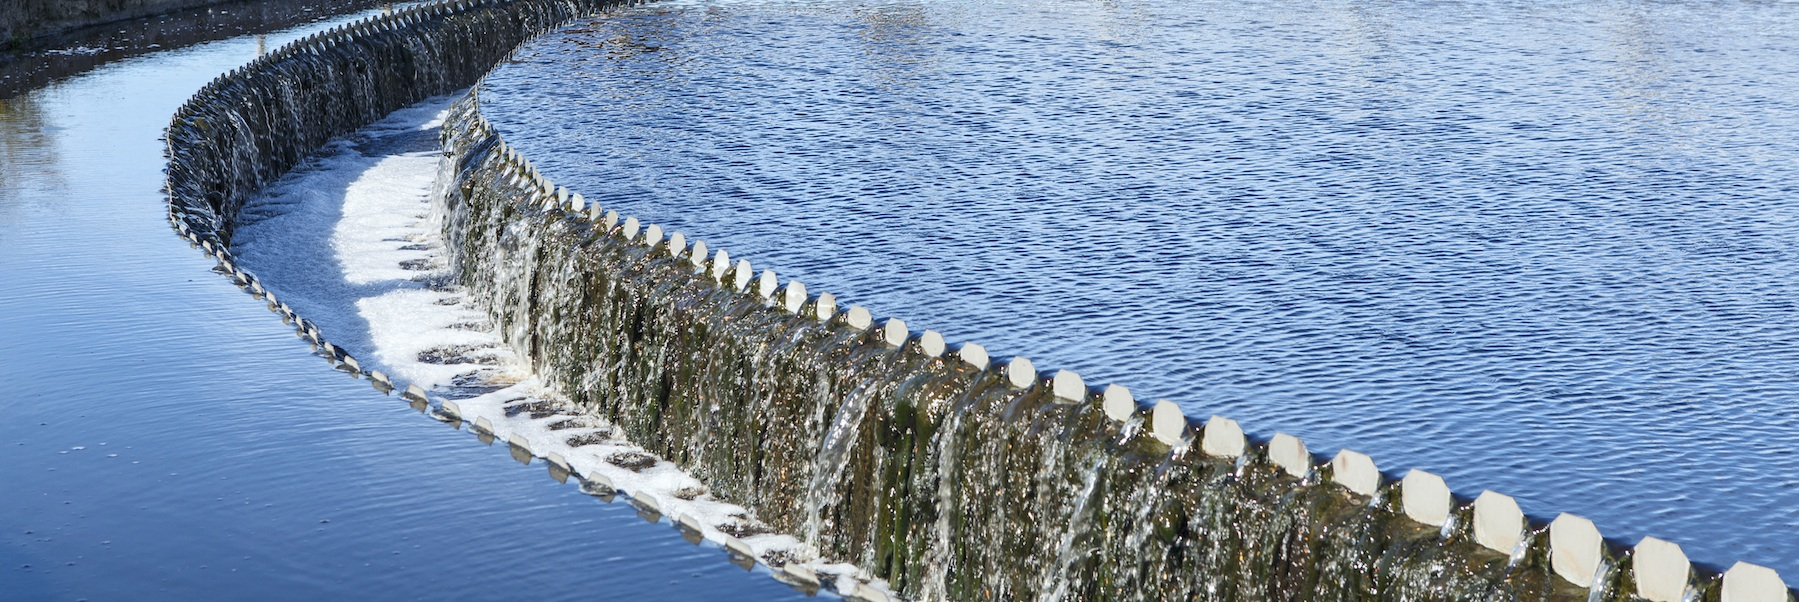 Water-overflow-from-the-big-sedimentation-drainages-round-form-000022142513_Double